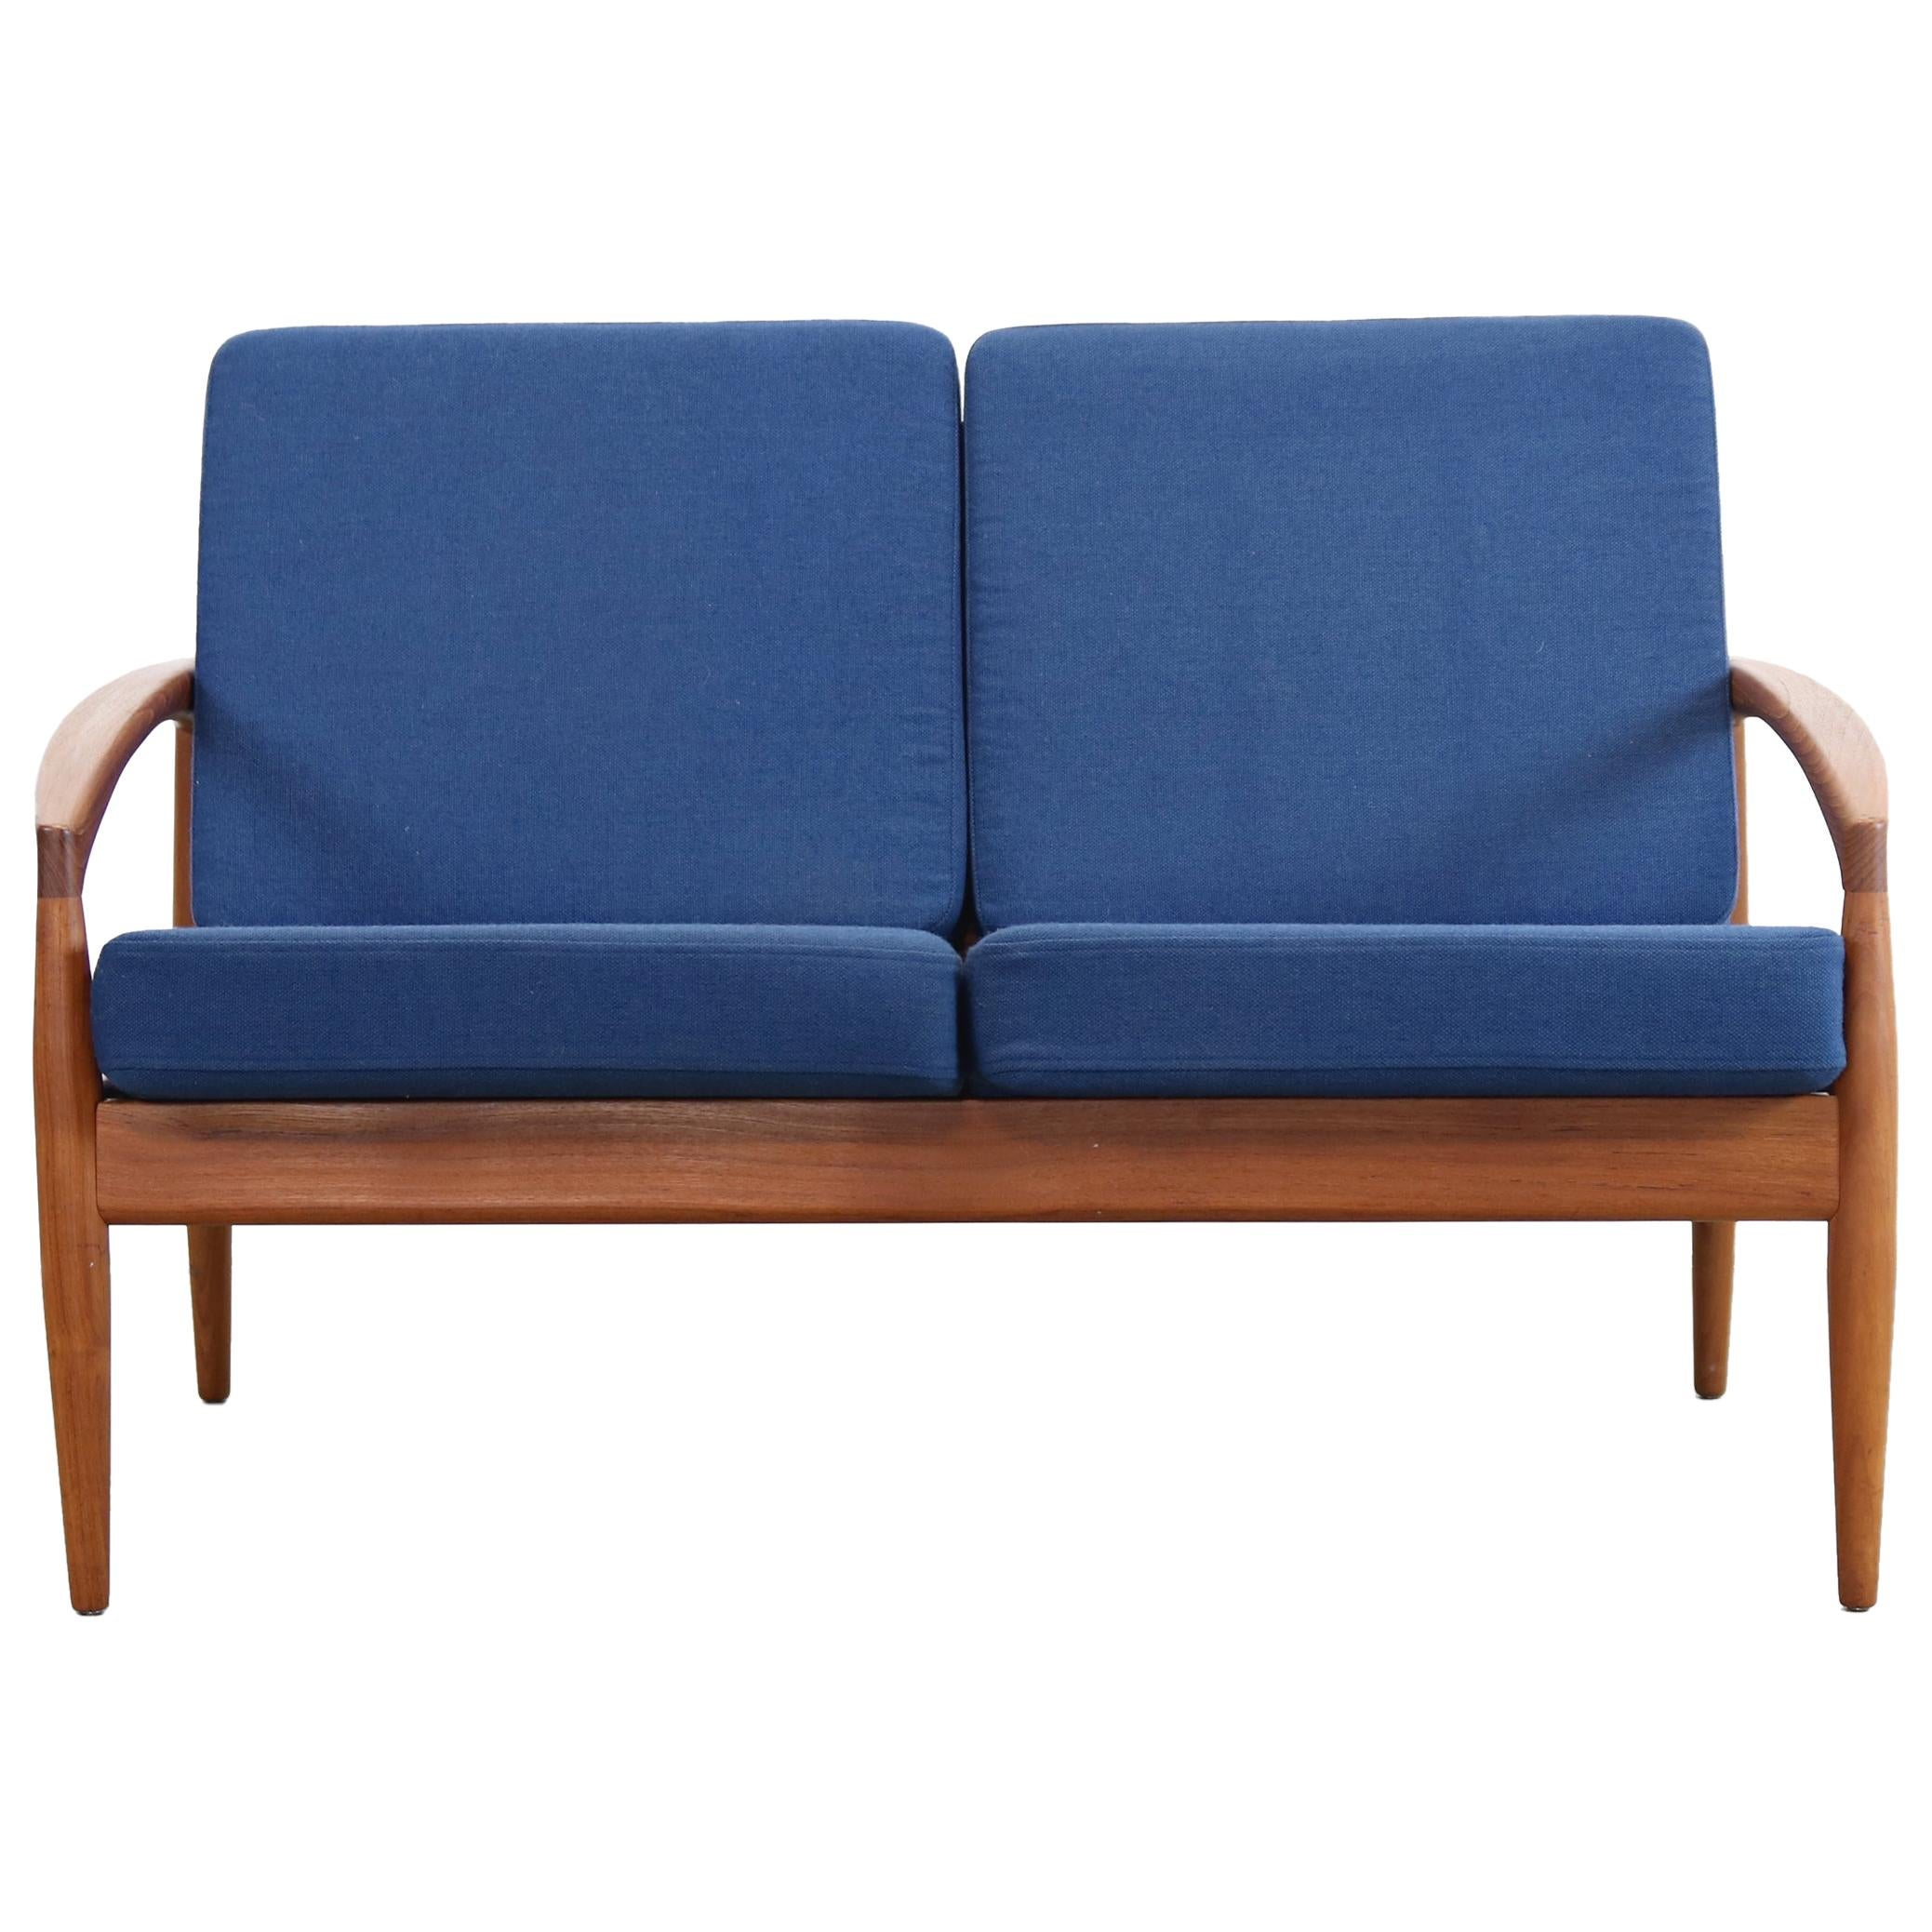 Paper Knife 2-Seater Sofa